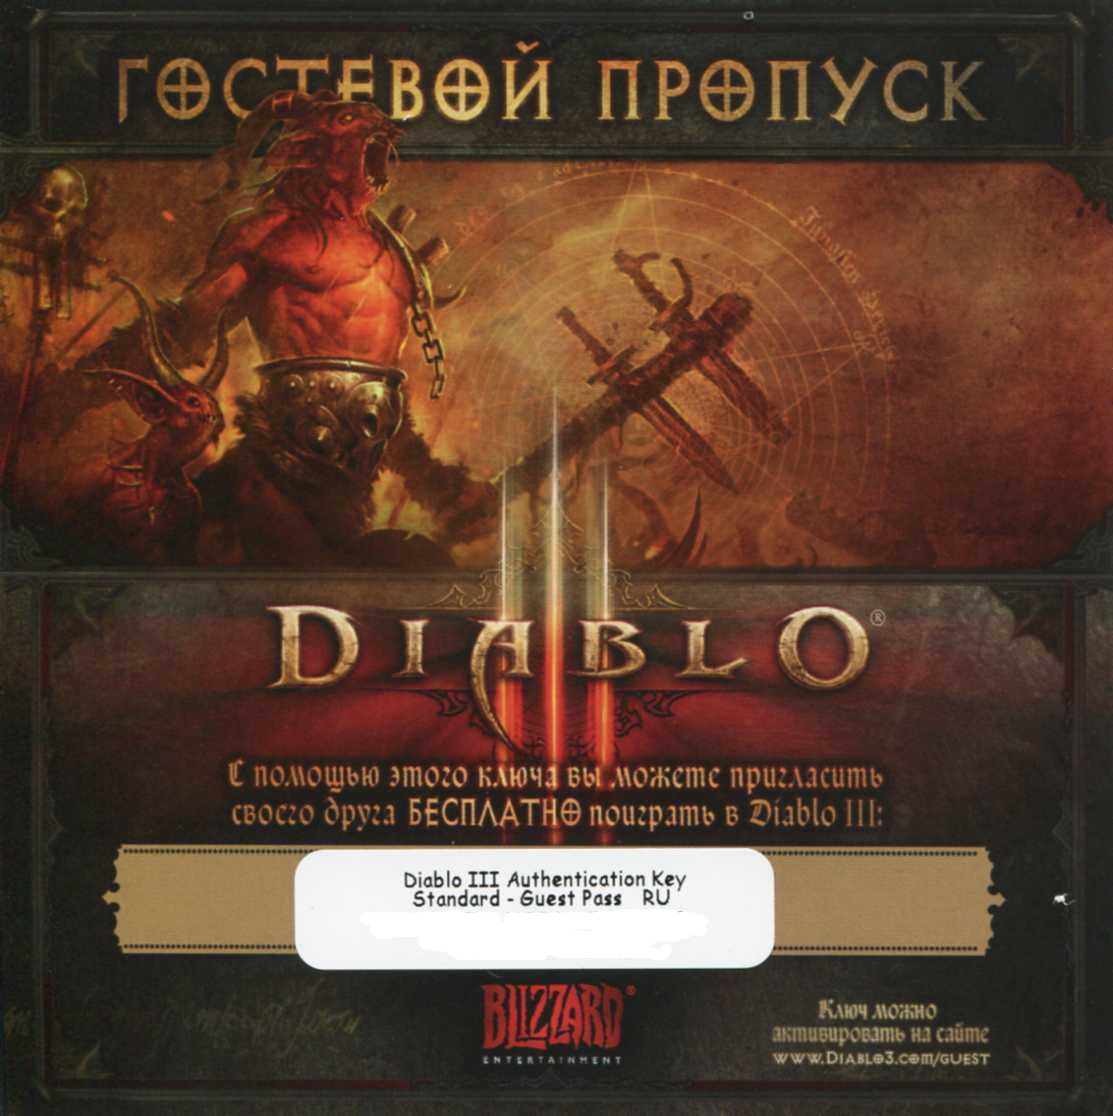 Buy Diablo III 3 (RU) (Activation Key to Battle.net) and download